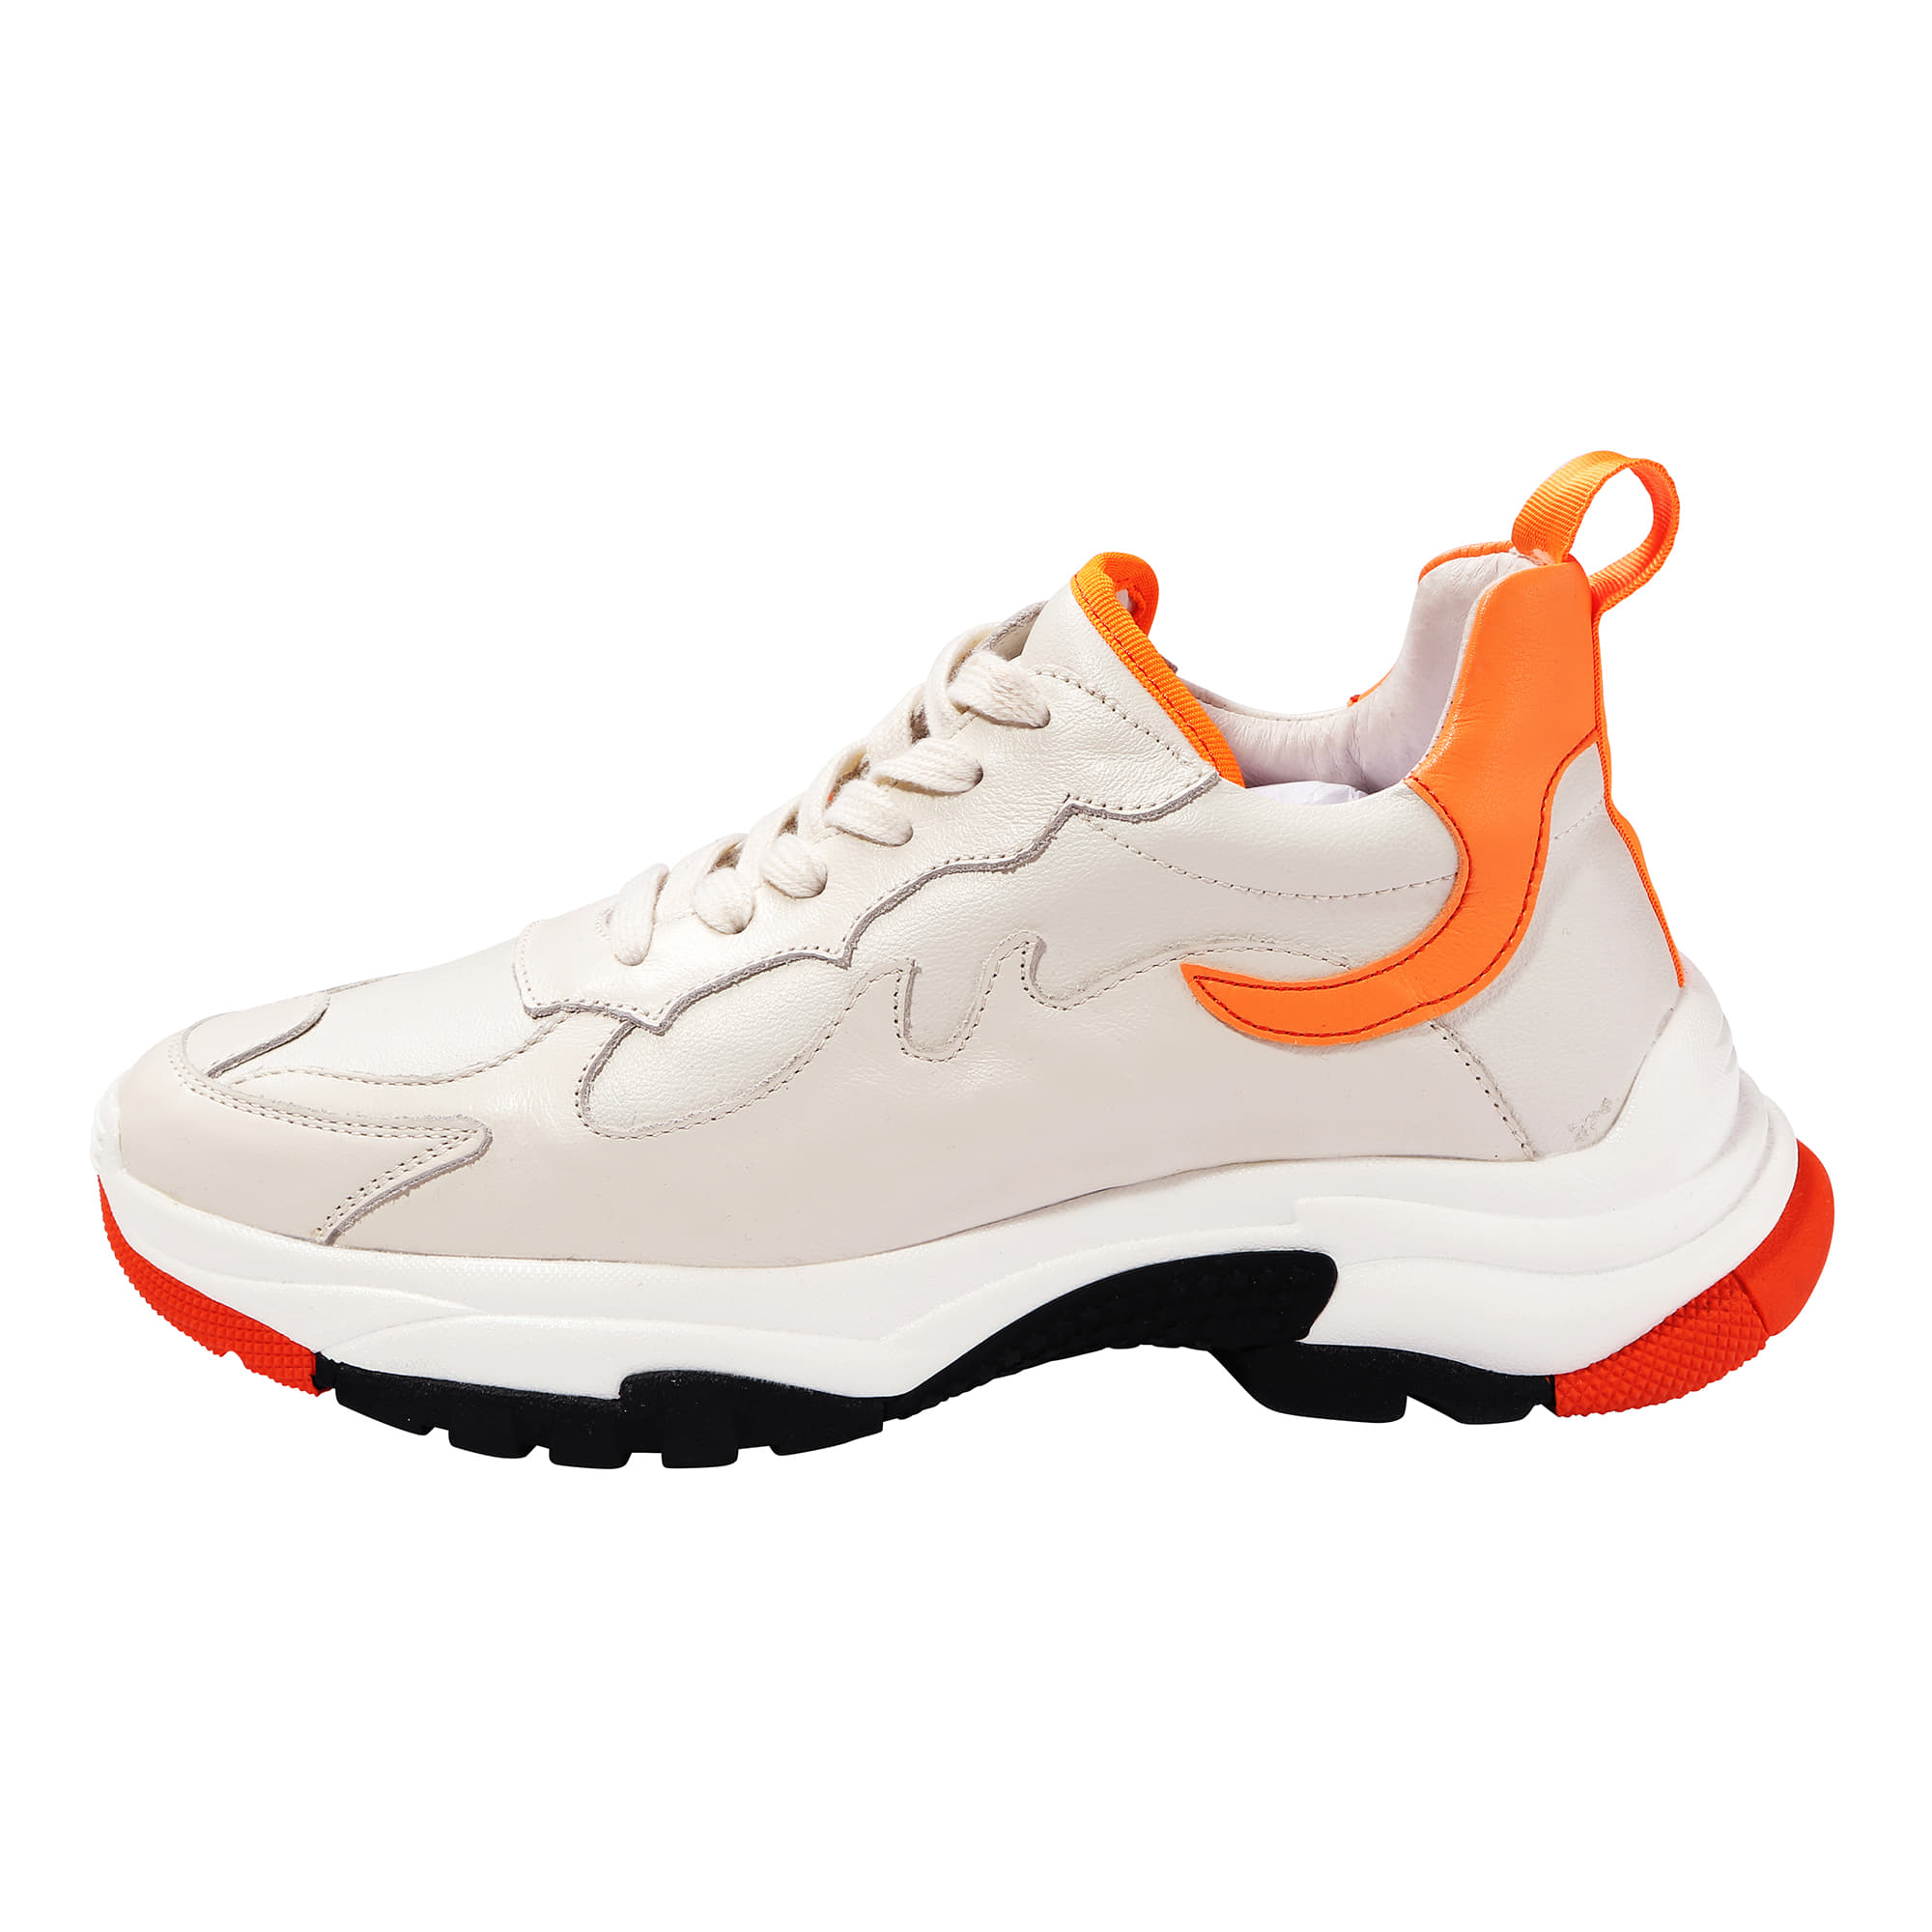 Runner Sneakers OR